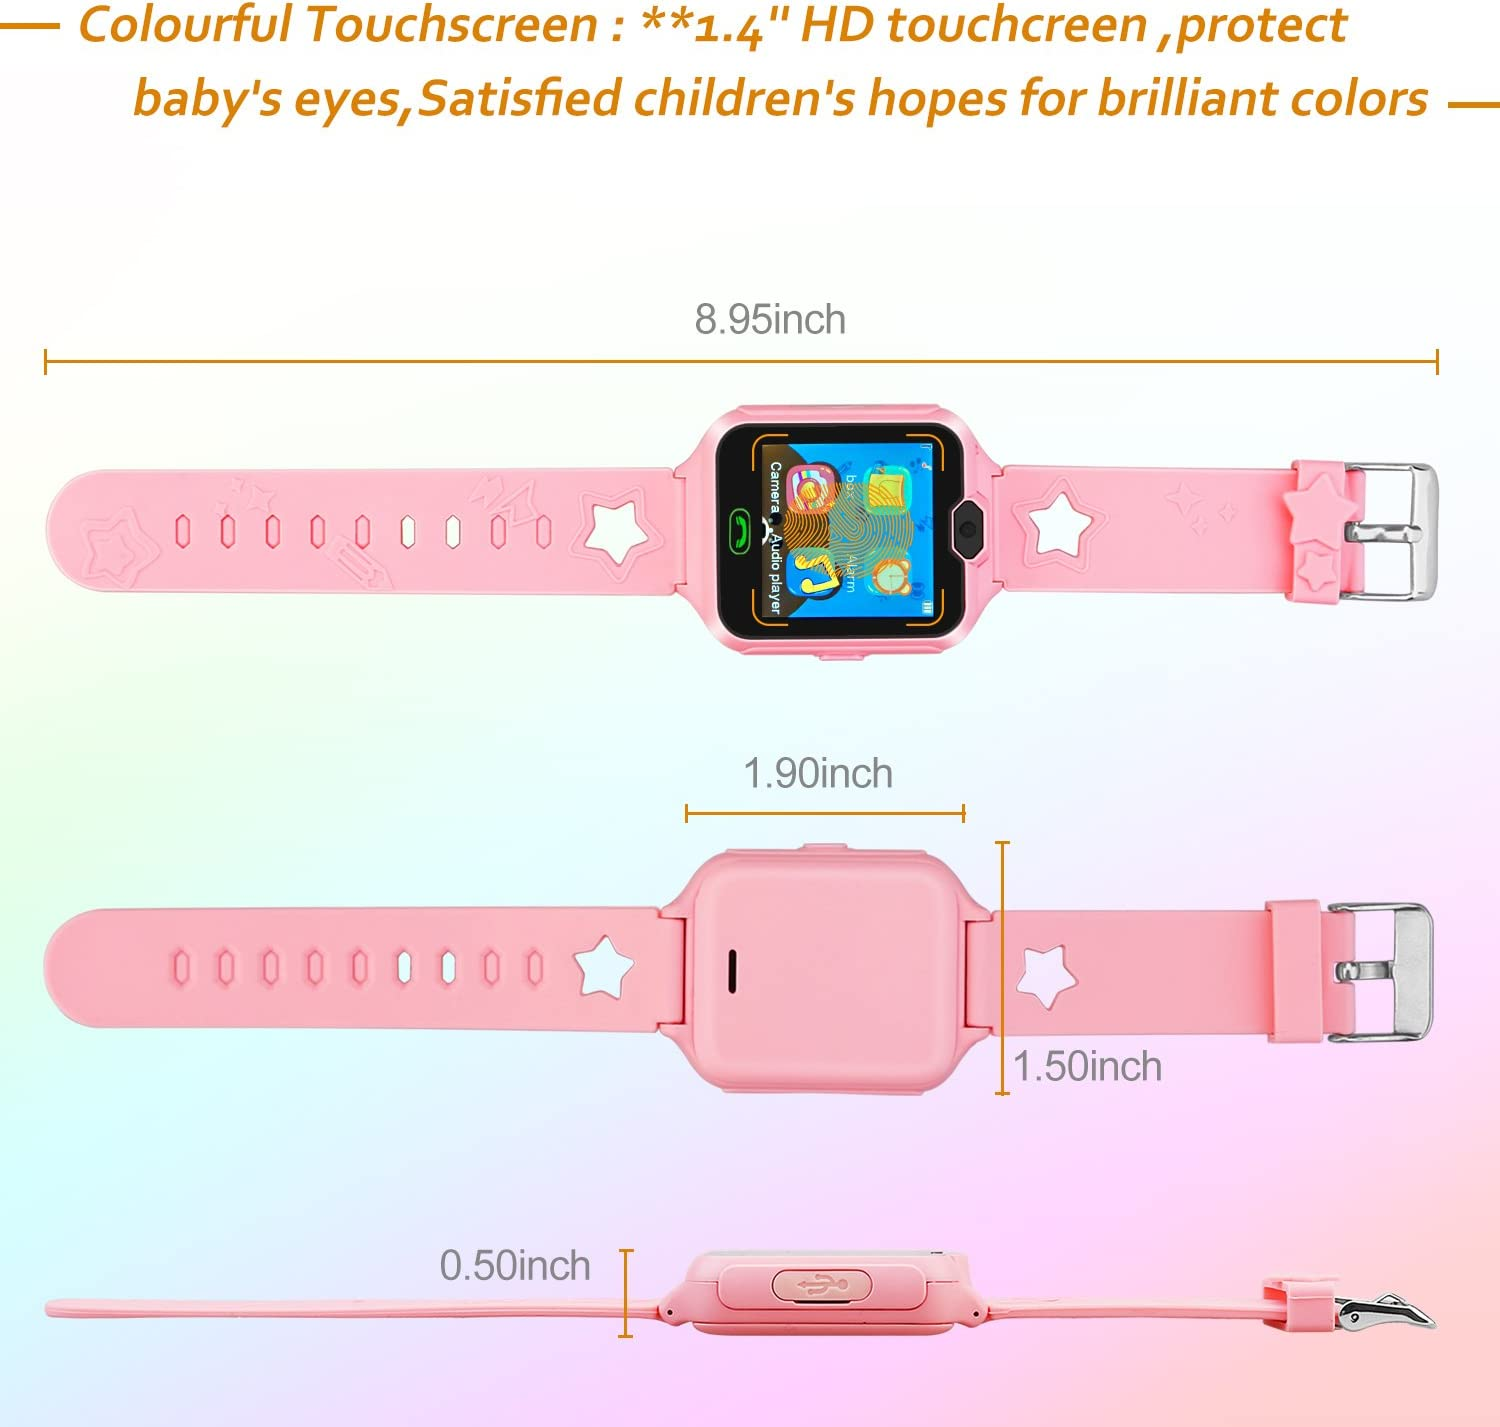 Fantasy Kids smartwatch Game Watches Touch Screen Camera Video Recorder Watch for Boys Girls Children Gifts (Phone Watch Pink)